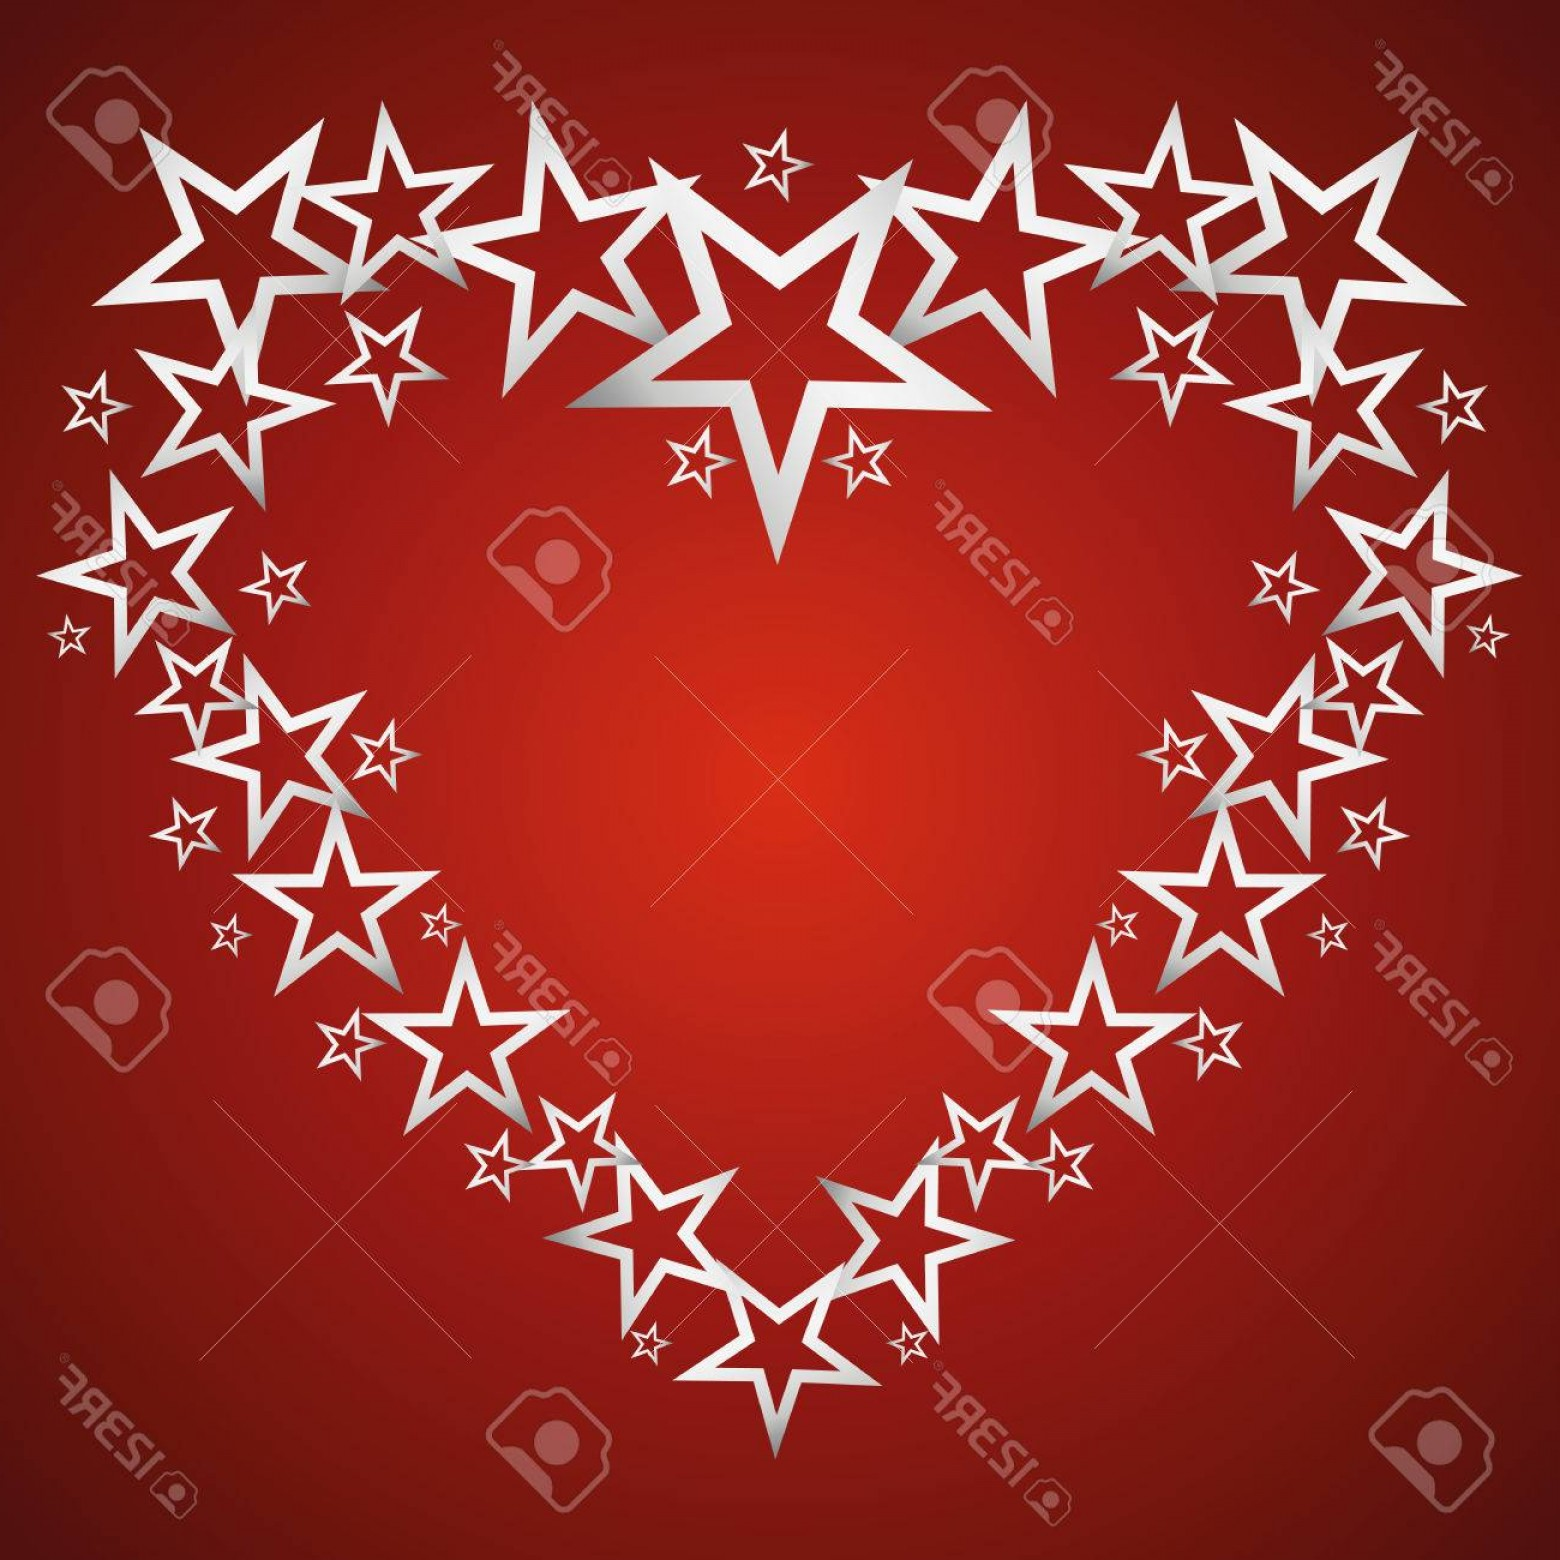 Vectors Heart And Star: Photostock Vector Silver Stars In The Form Of Hearts On A Red Background Background Vector Illustration Frame Card